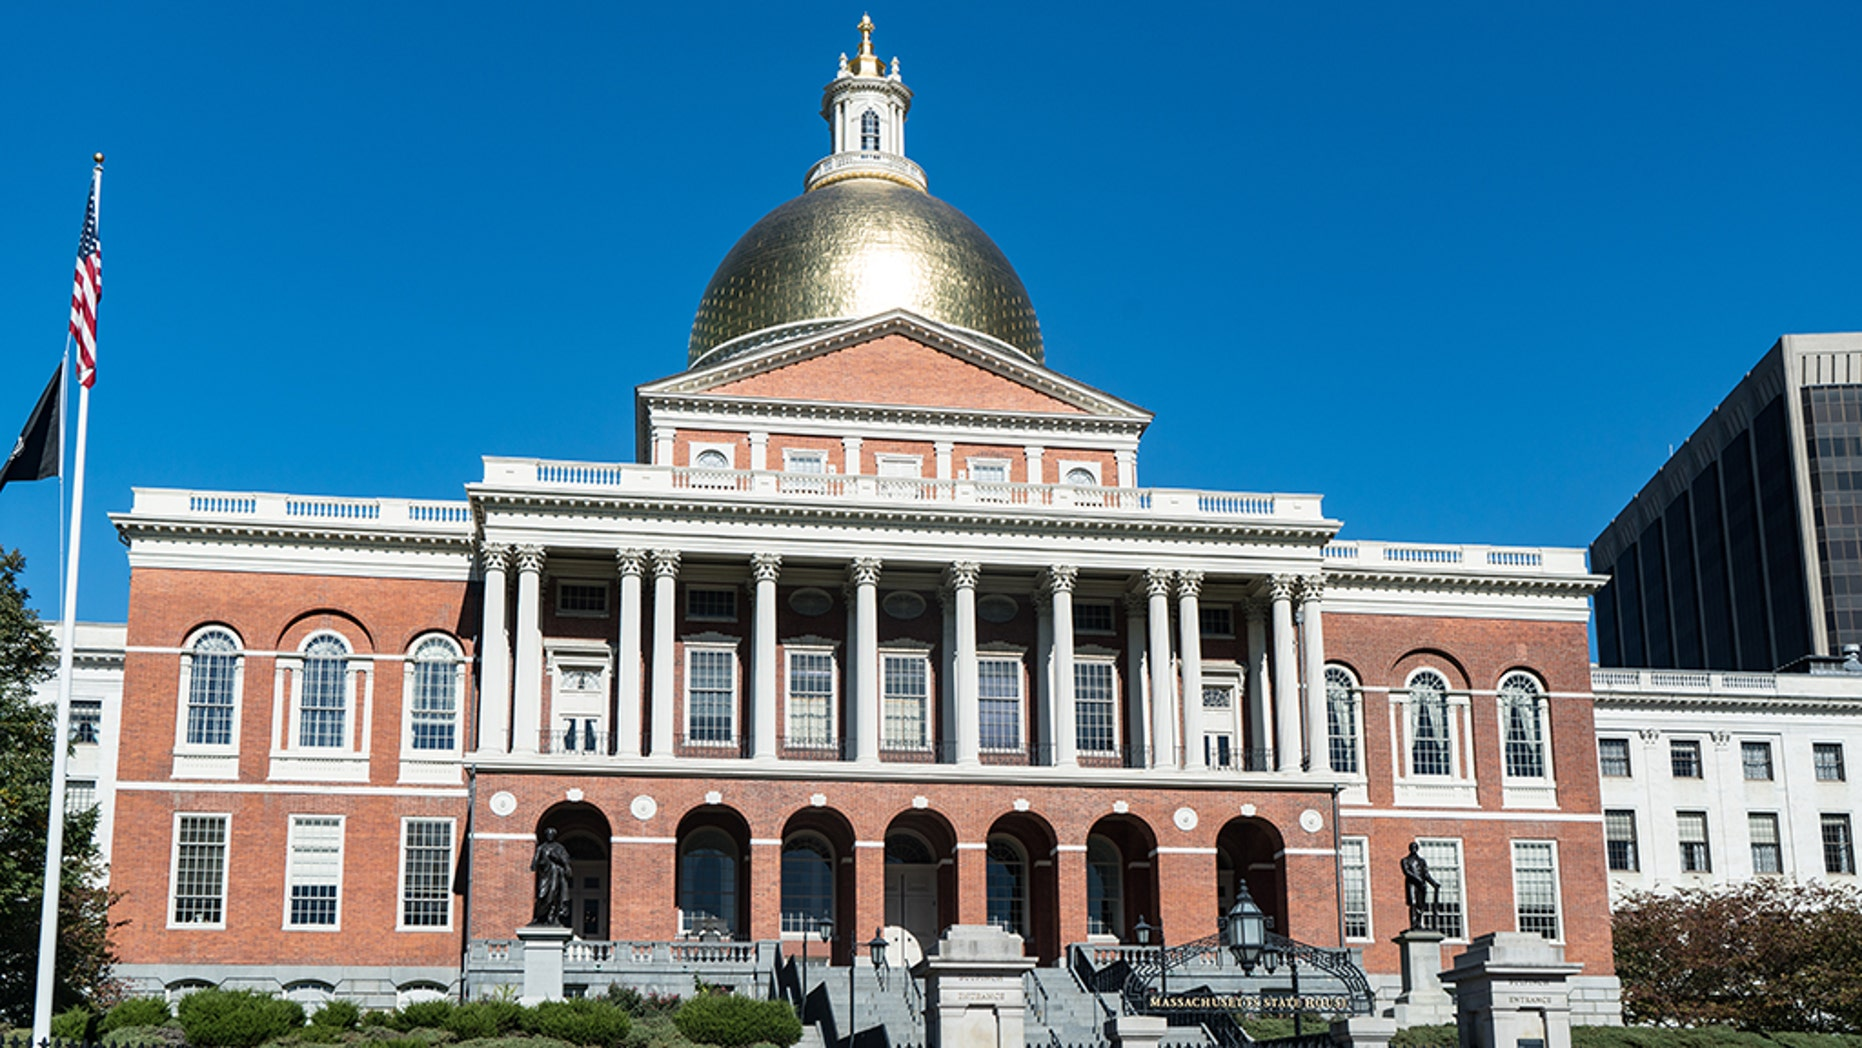 Massachusetts Democrats want to remove 'God' from oath of